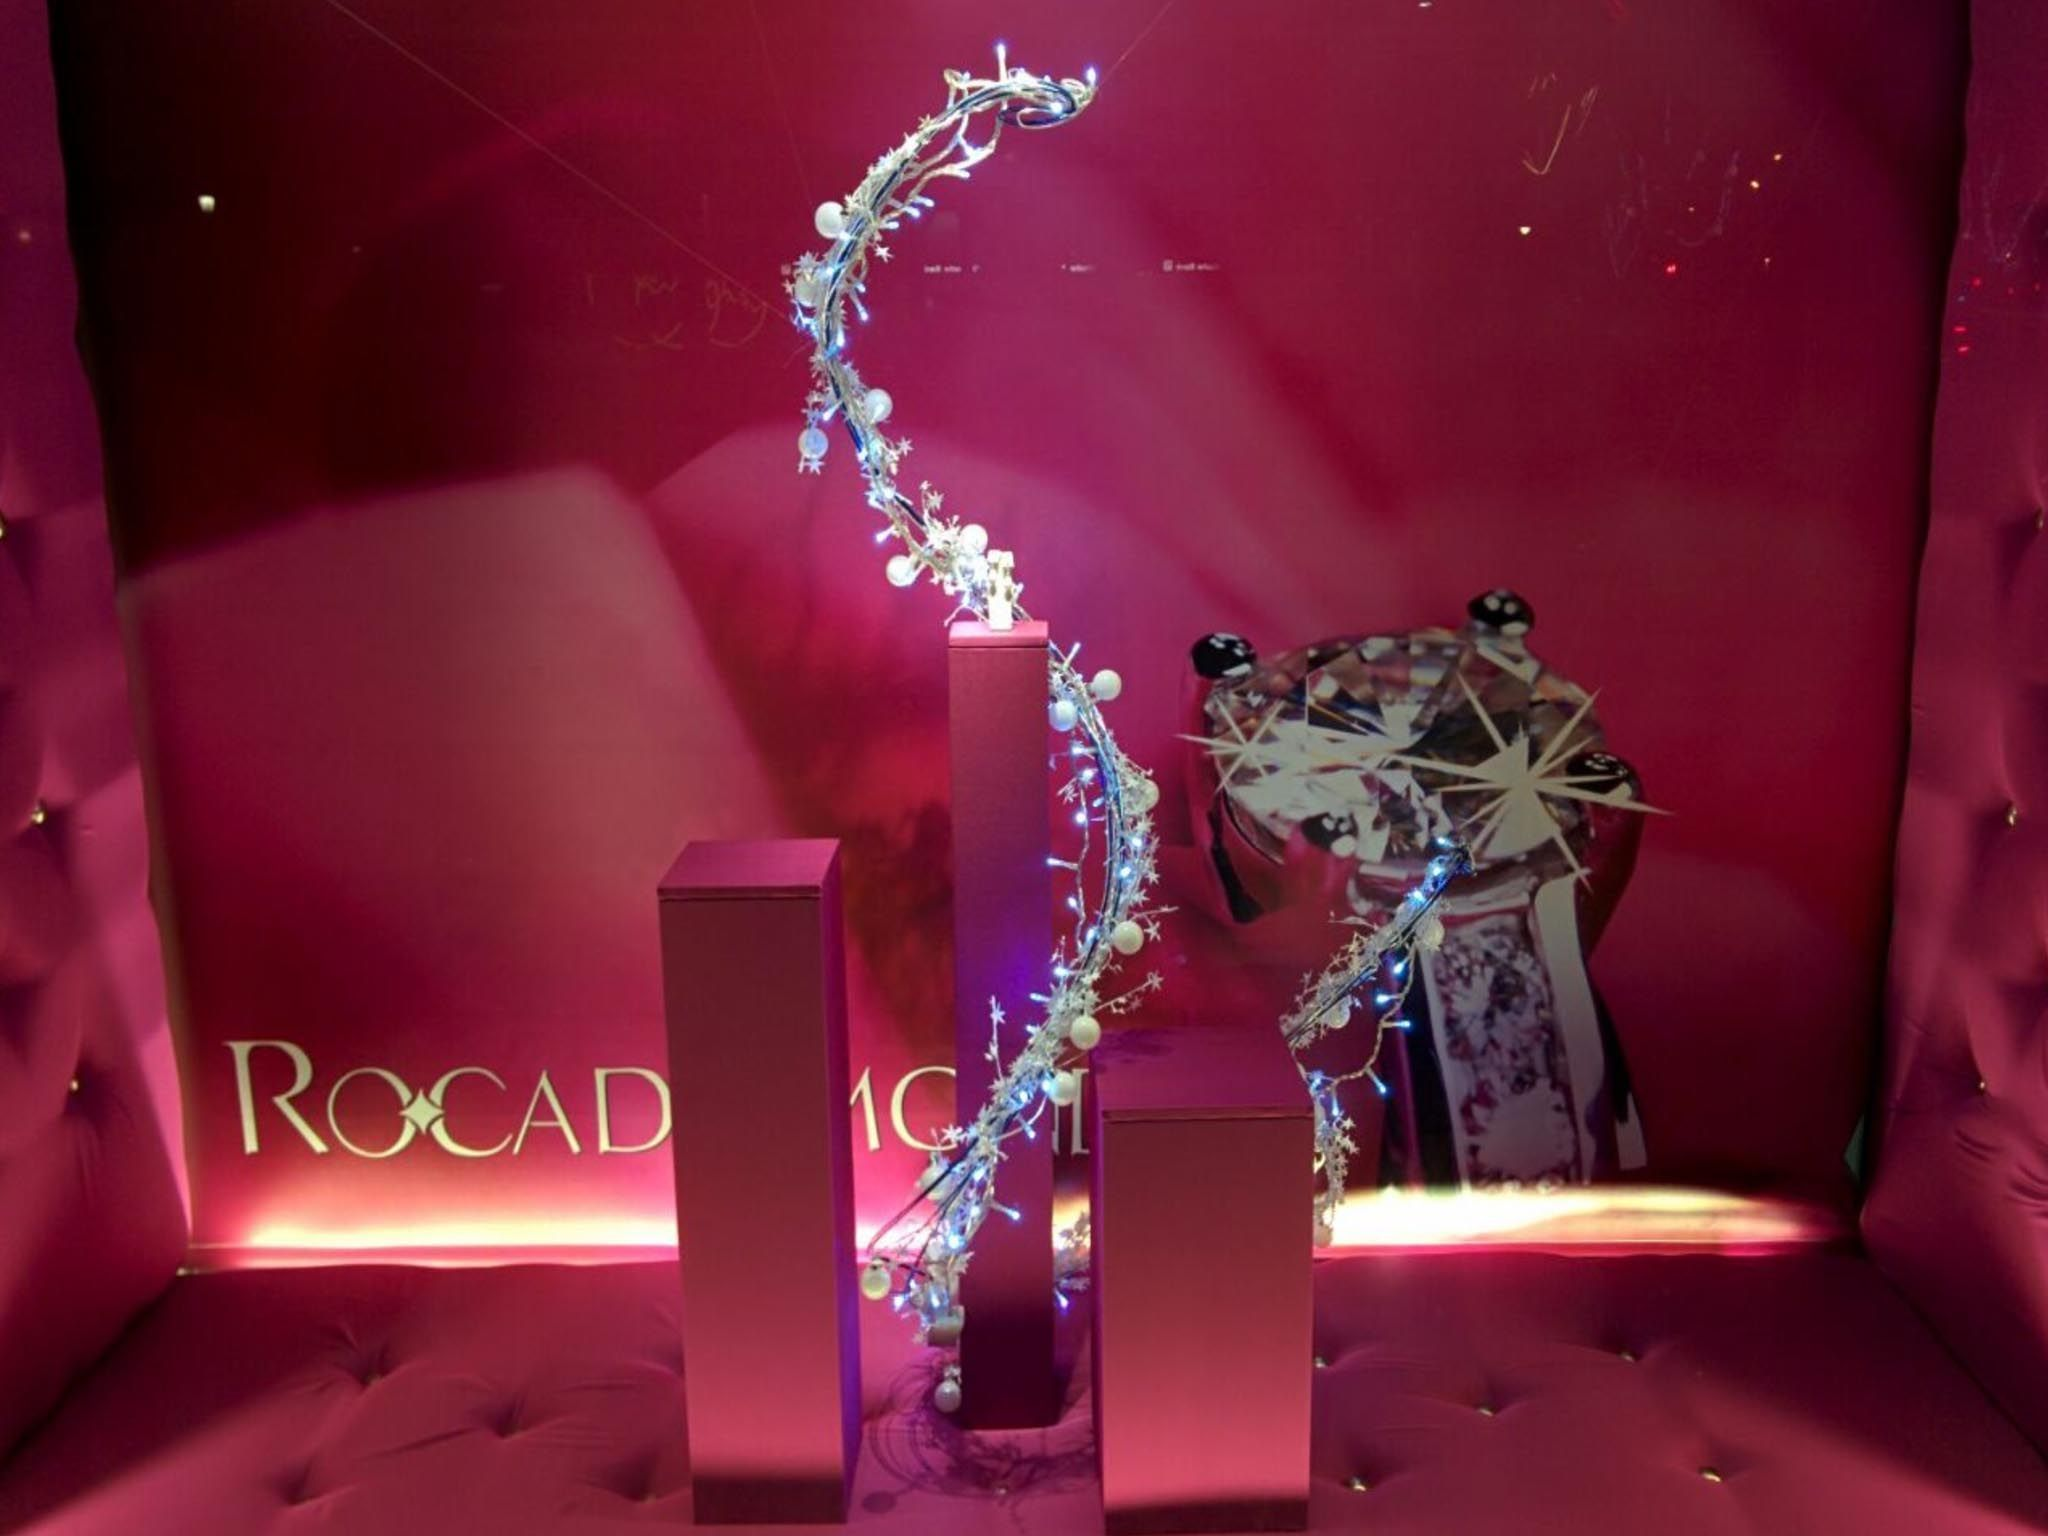 odos, visual merchandising, instalaciones efimeras, retail, stand, eventos, escaparatismo, Roca_diamonds